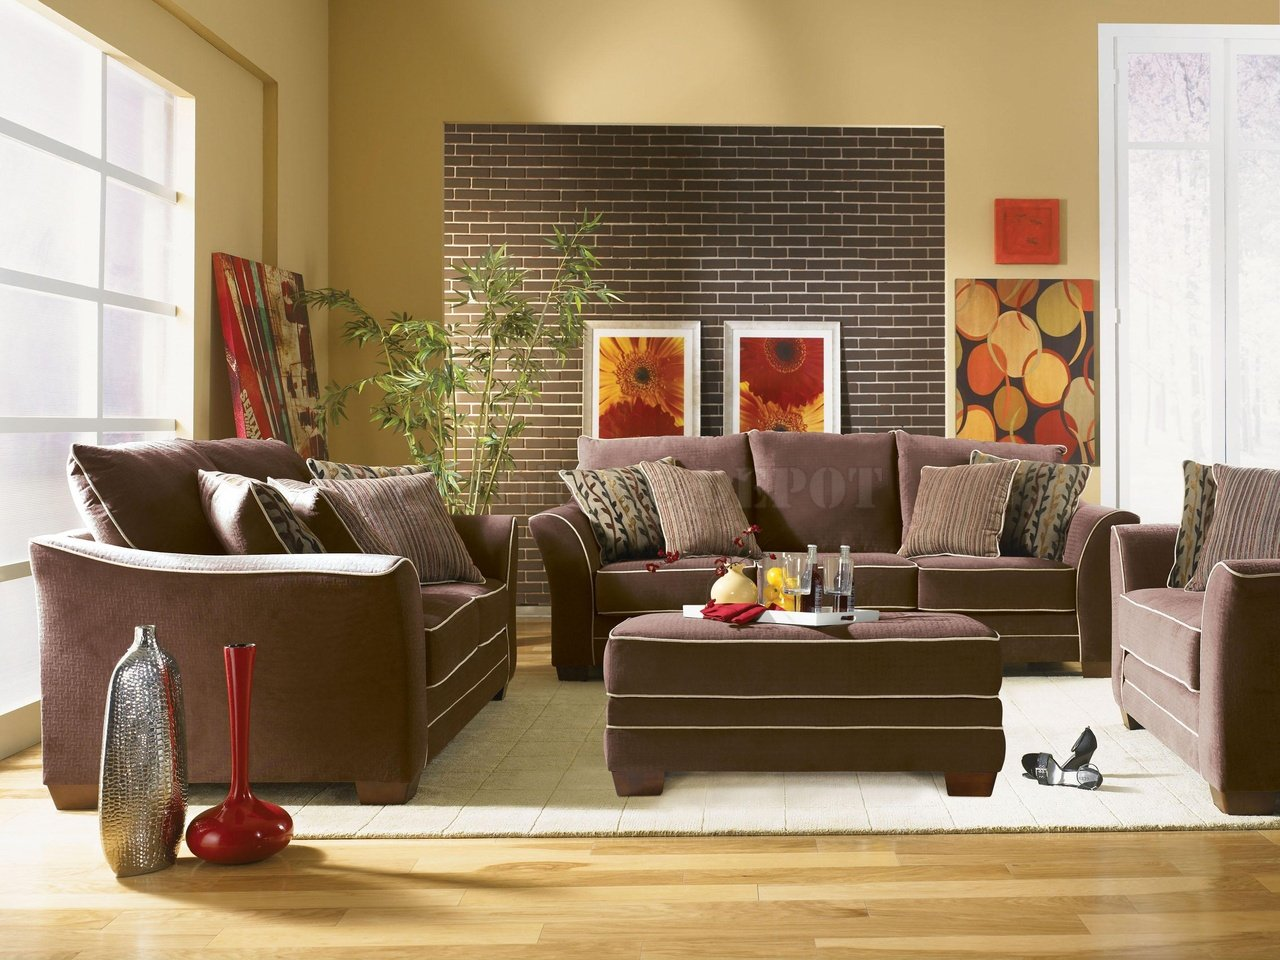 Interior design ideas interior designs home design ideas Sofas for small living room